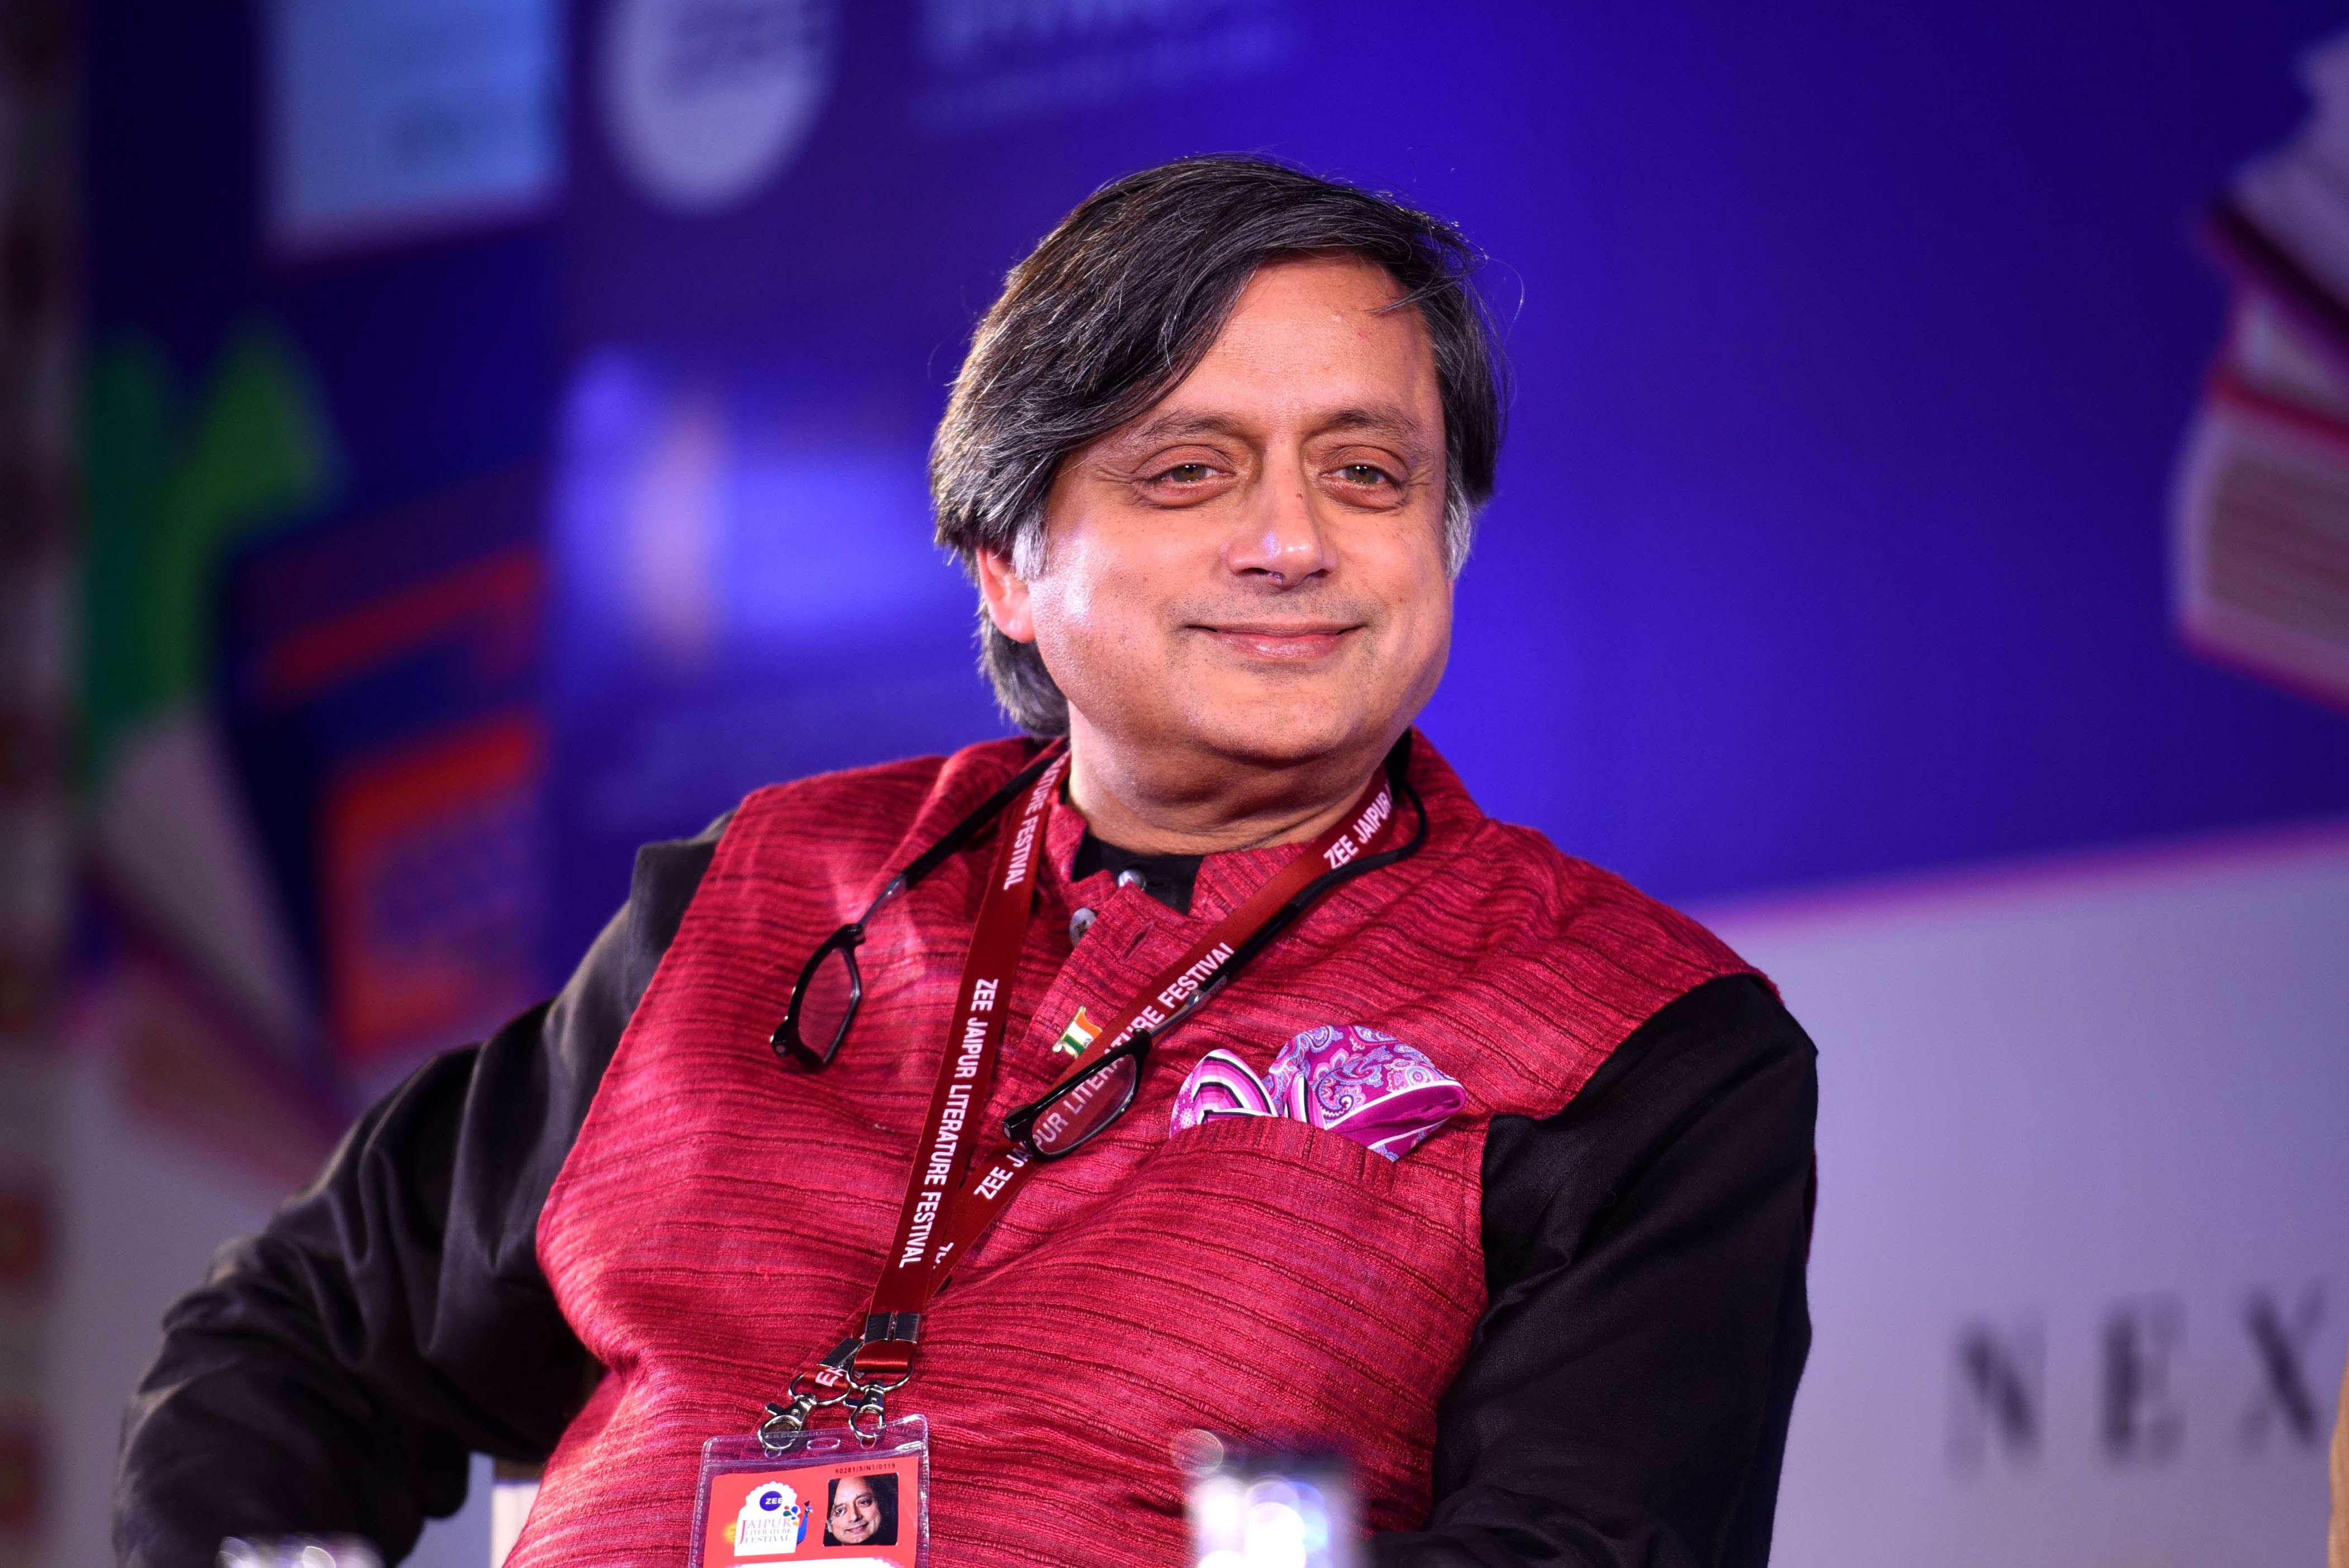 Slide 9 of 31: JAIPUR, INDIA - JANUARY 25: Shashi Tharoor during Jeremy Paxman on The English session at ZEE Jaipur Literature Festival 2019 at Diggi Palace on January 25, 2019 in Jaipur, India. (Photo by Amal KS/Hindustan Times via Getty Images)